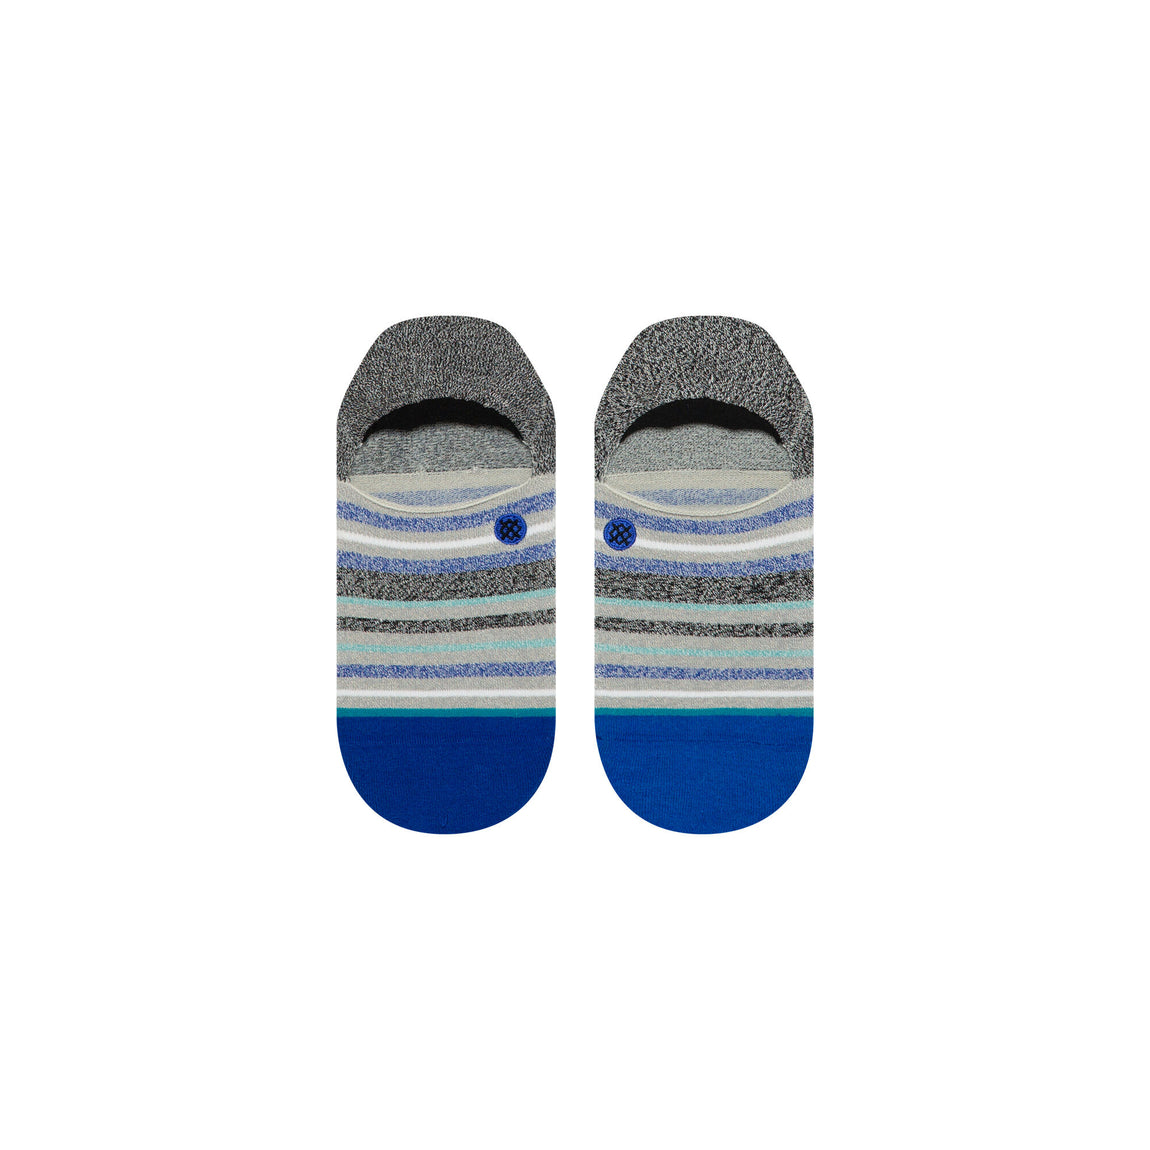 Stance Byron Bay Invisible Socks (Blue) - Stance Byron Bay Invisible Socks (Blue) -